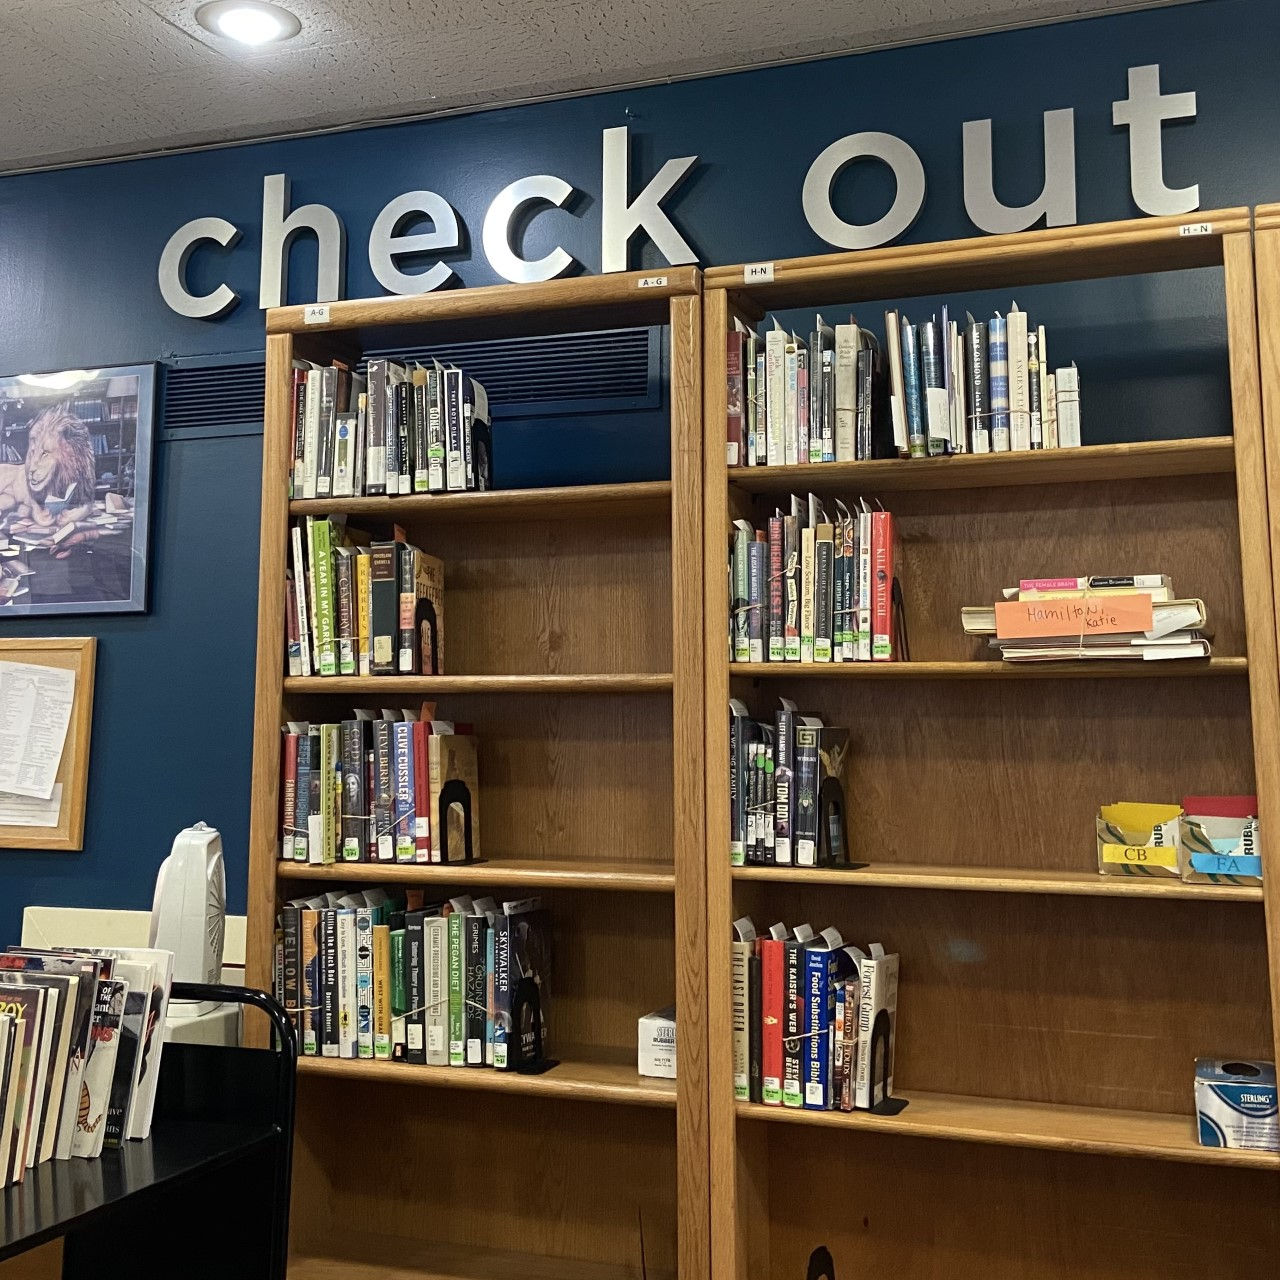 New Signs for Knox County Library